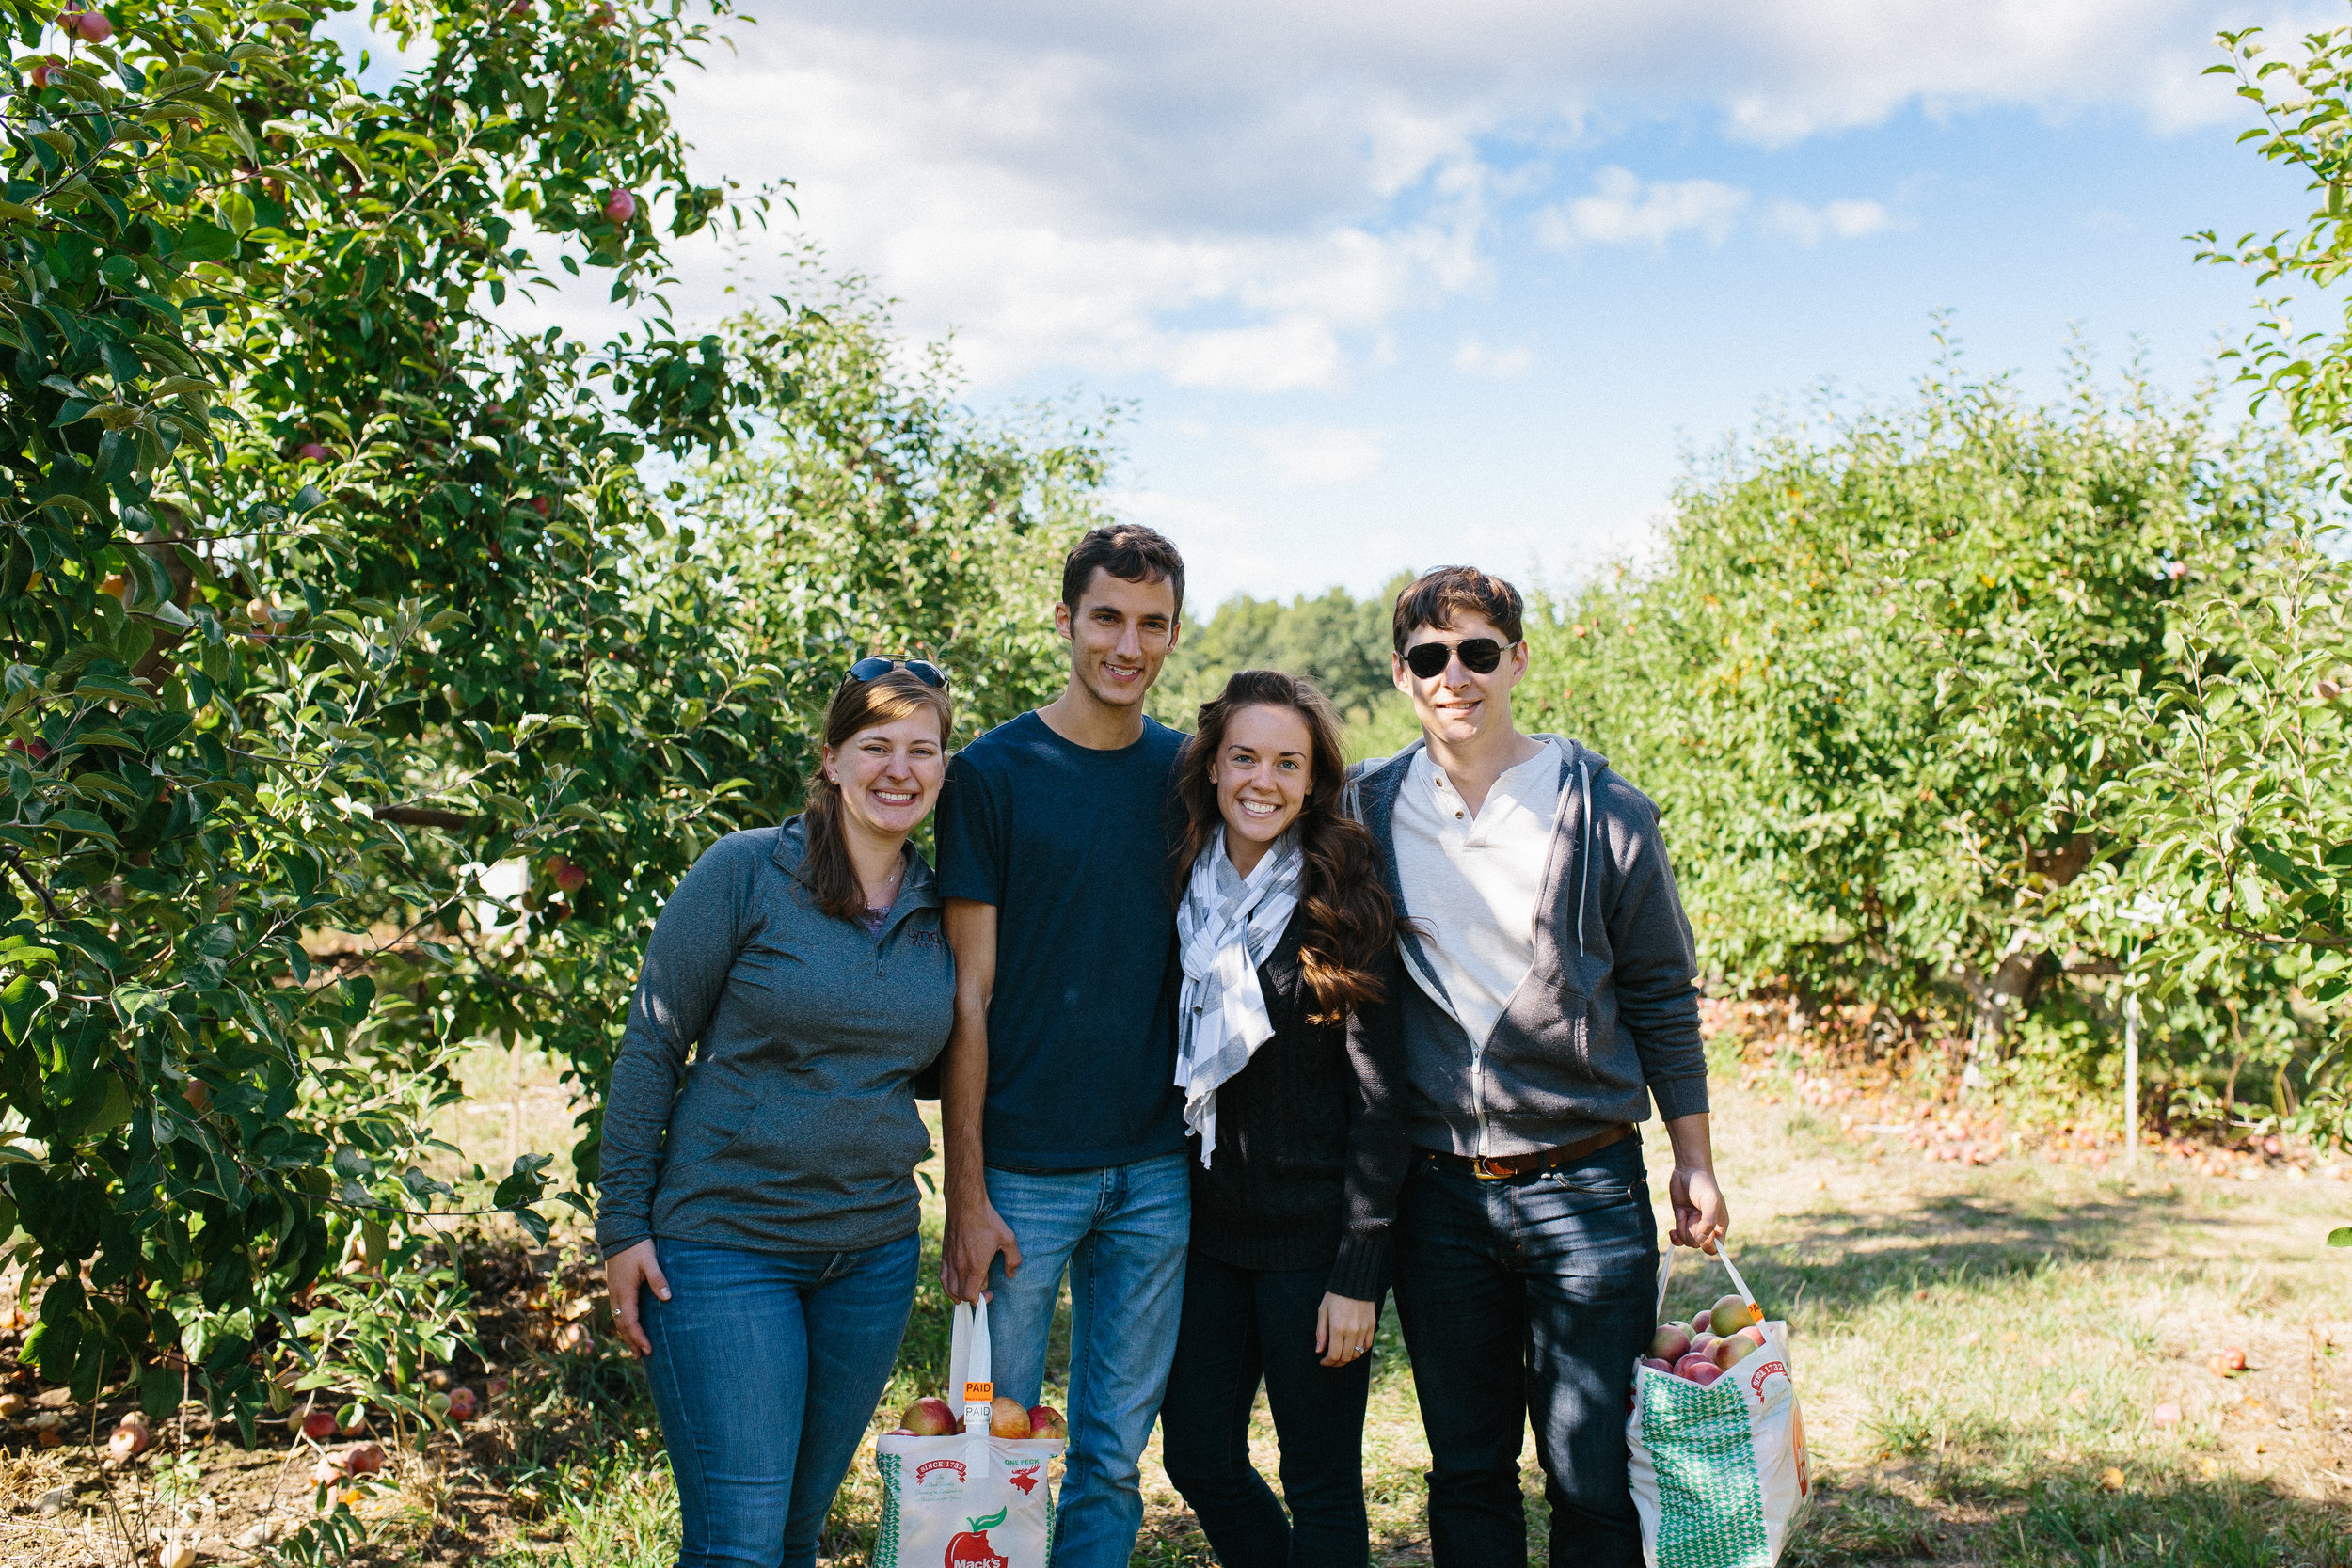 Happy Friends Apple Picking and Hanging Out